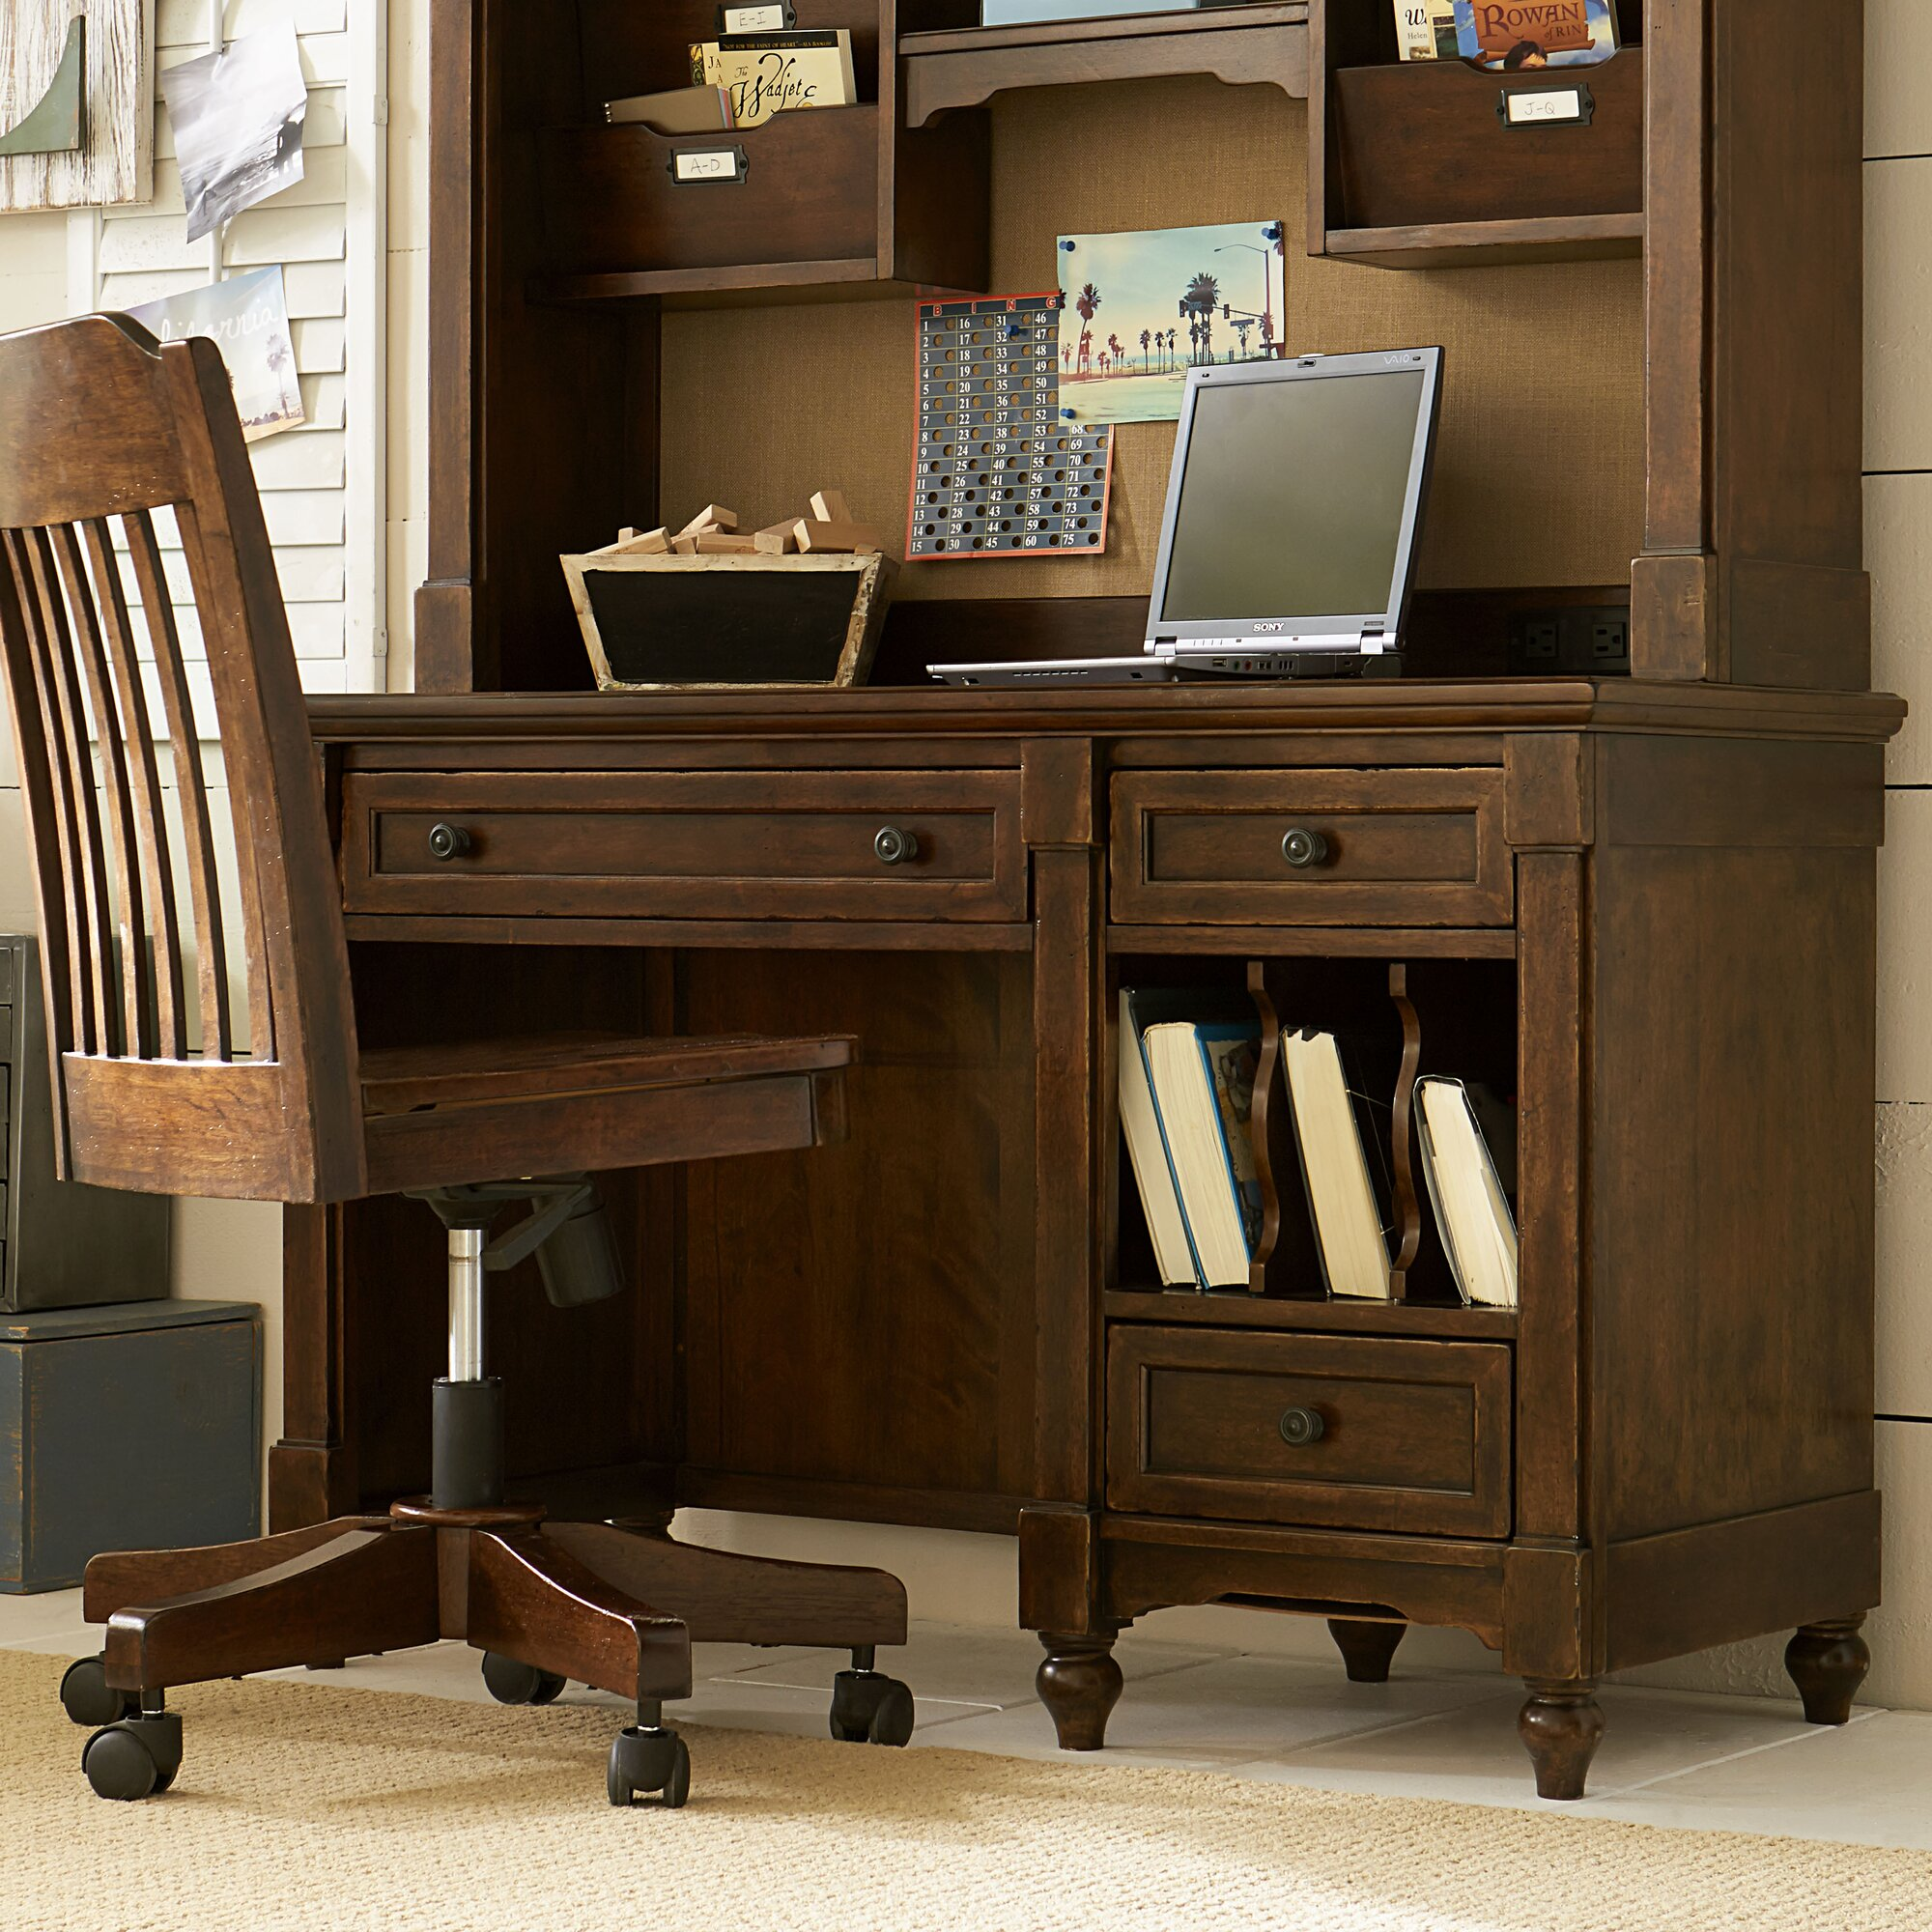 Lc kids big sur by wendy bellissimo murphy customizable for Big w bedroom furniture